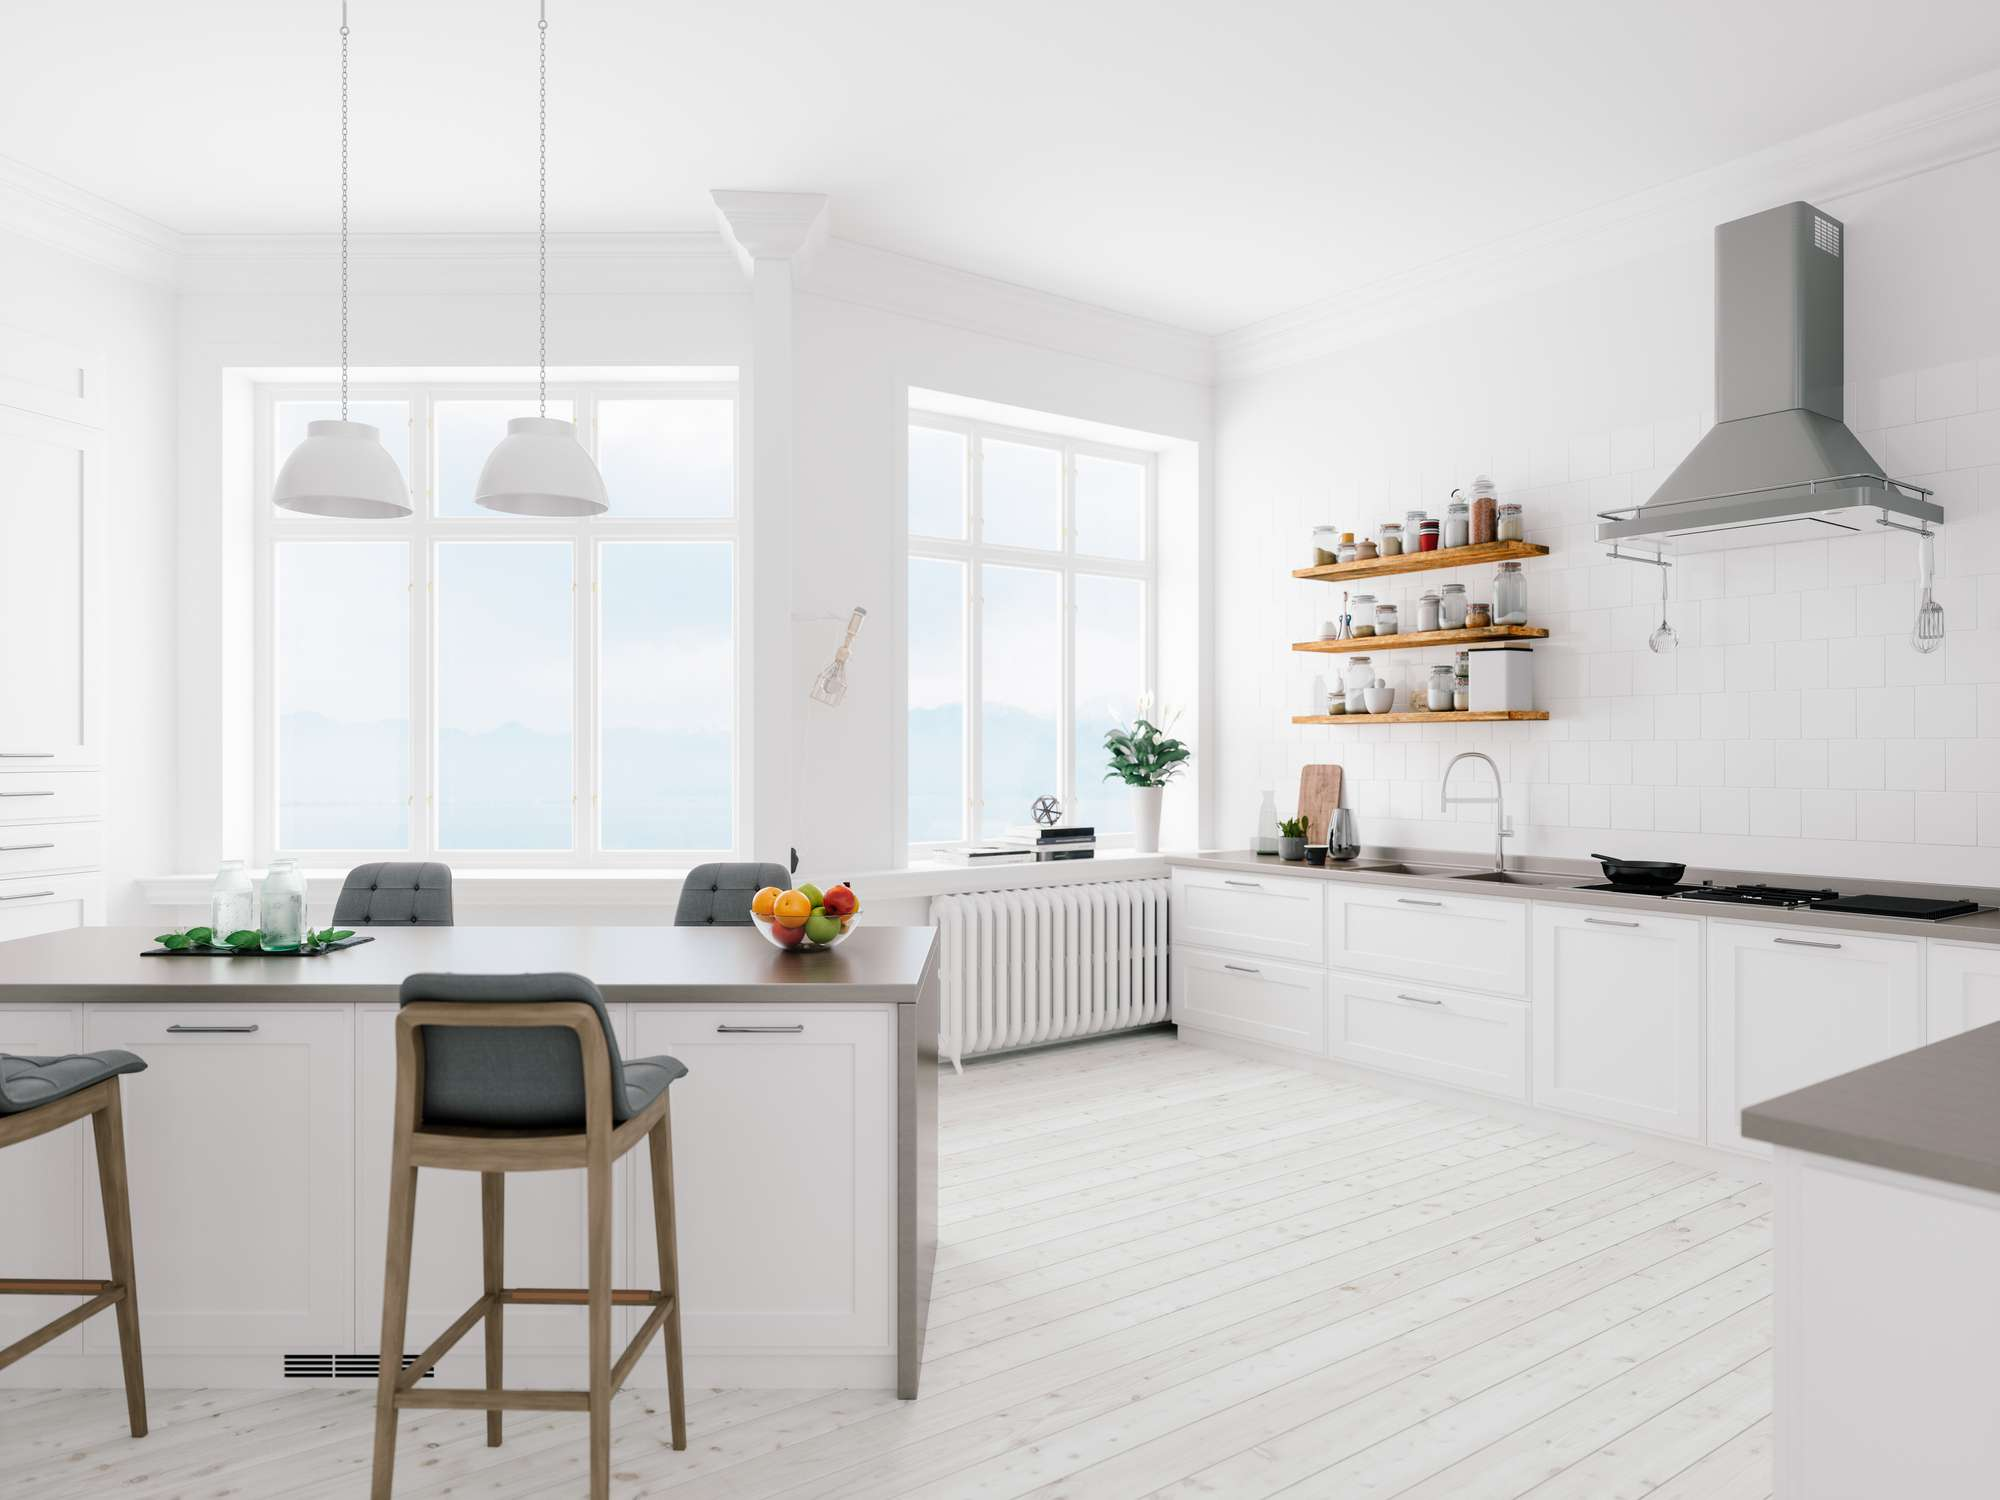 Floating wood shelves in an all-white kitchen.